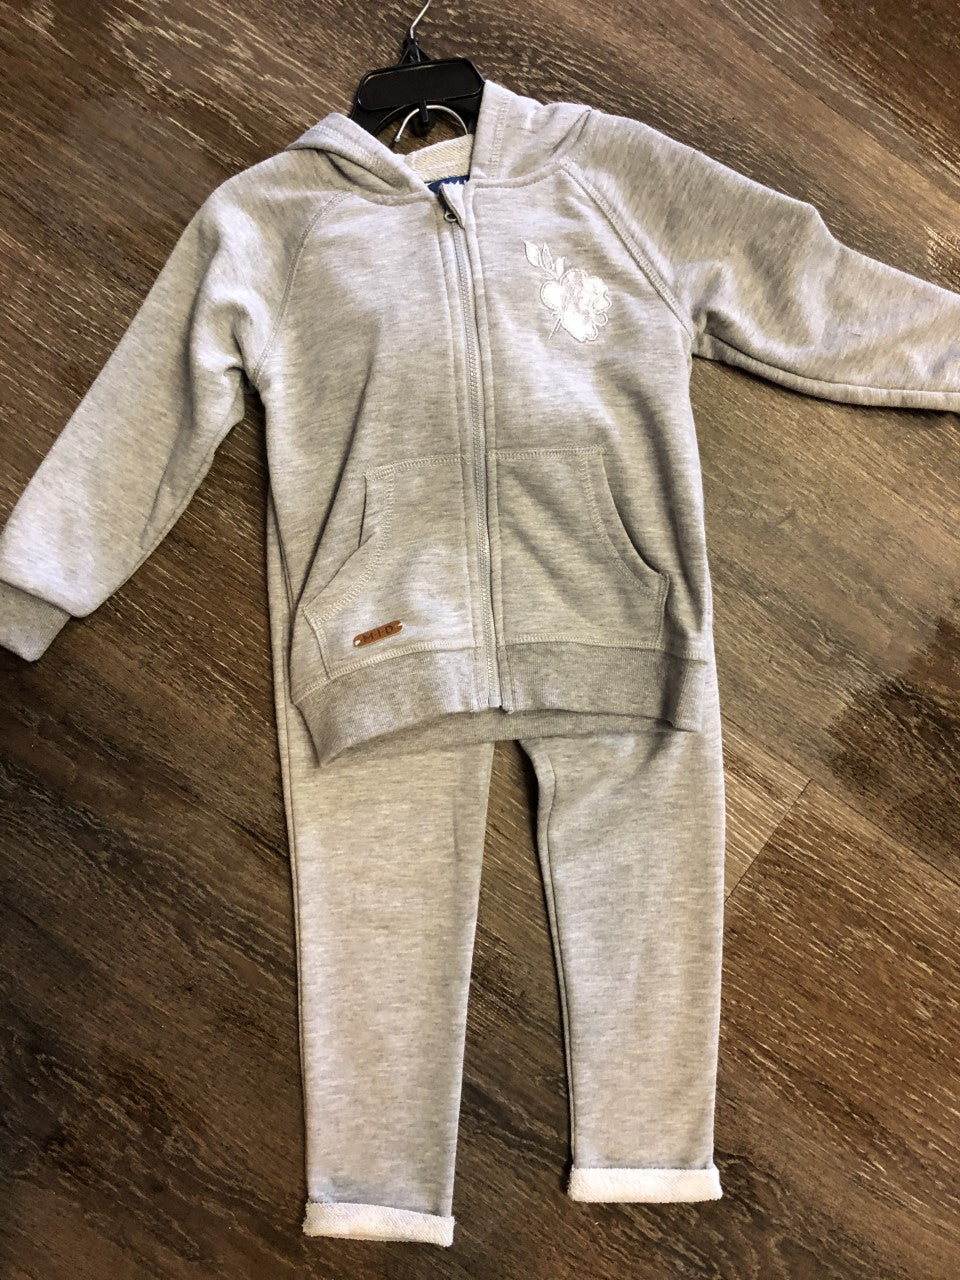 Grey Lace Jogger Sweatsuit - Lullaby's Boutique